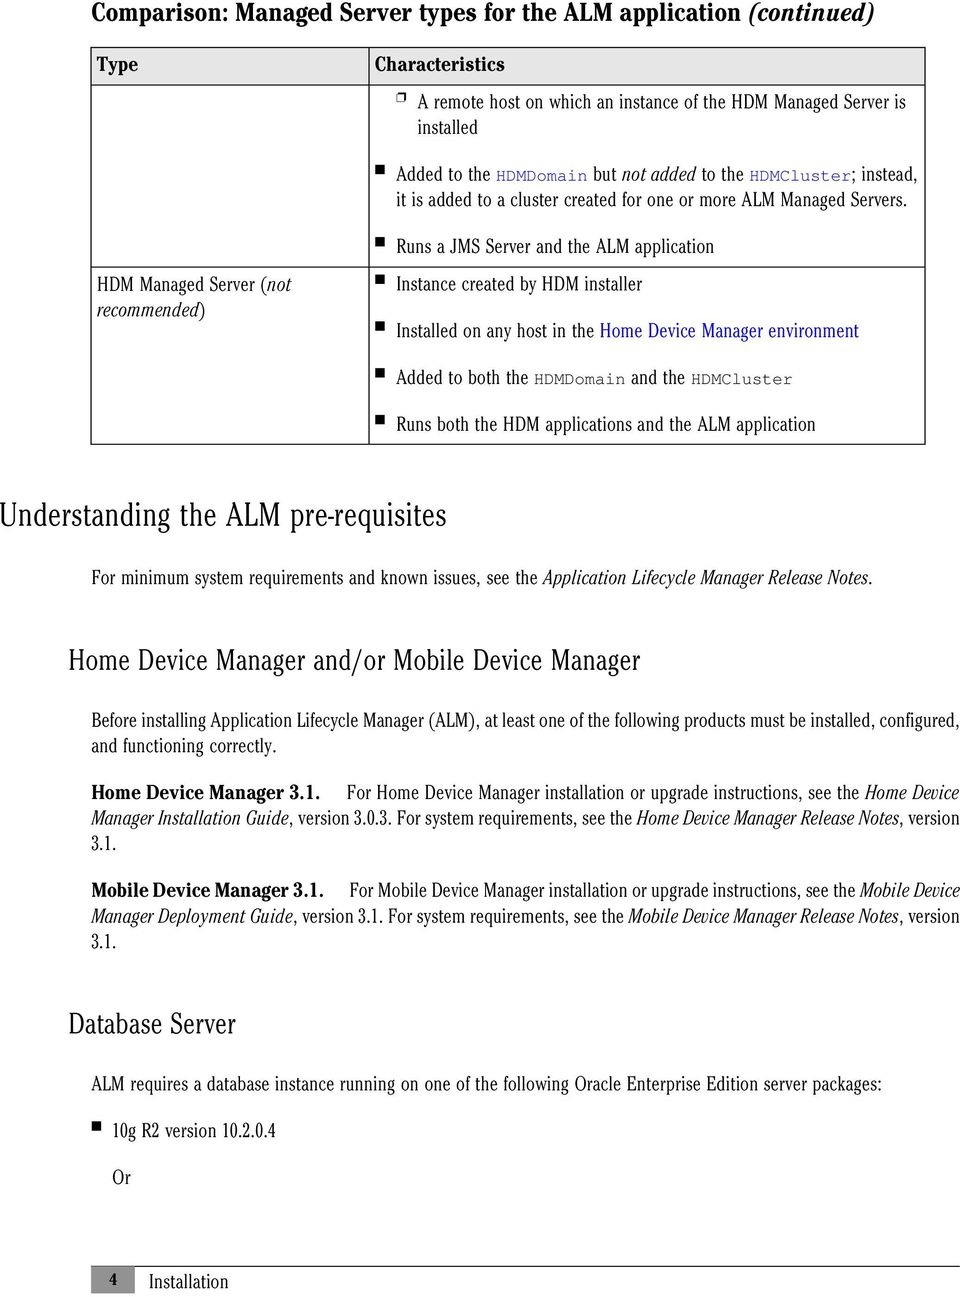 HDM Managed Server (not recommended) Runs a JMS Server and the ALM application Instance created by HDM installer Installed on any host in the Home Device Manager environment Added to both the